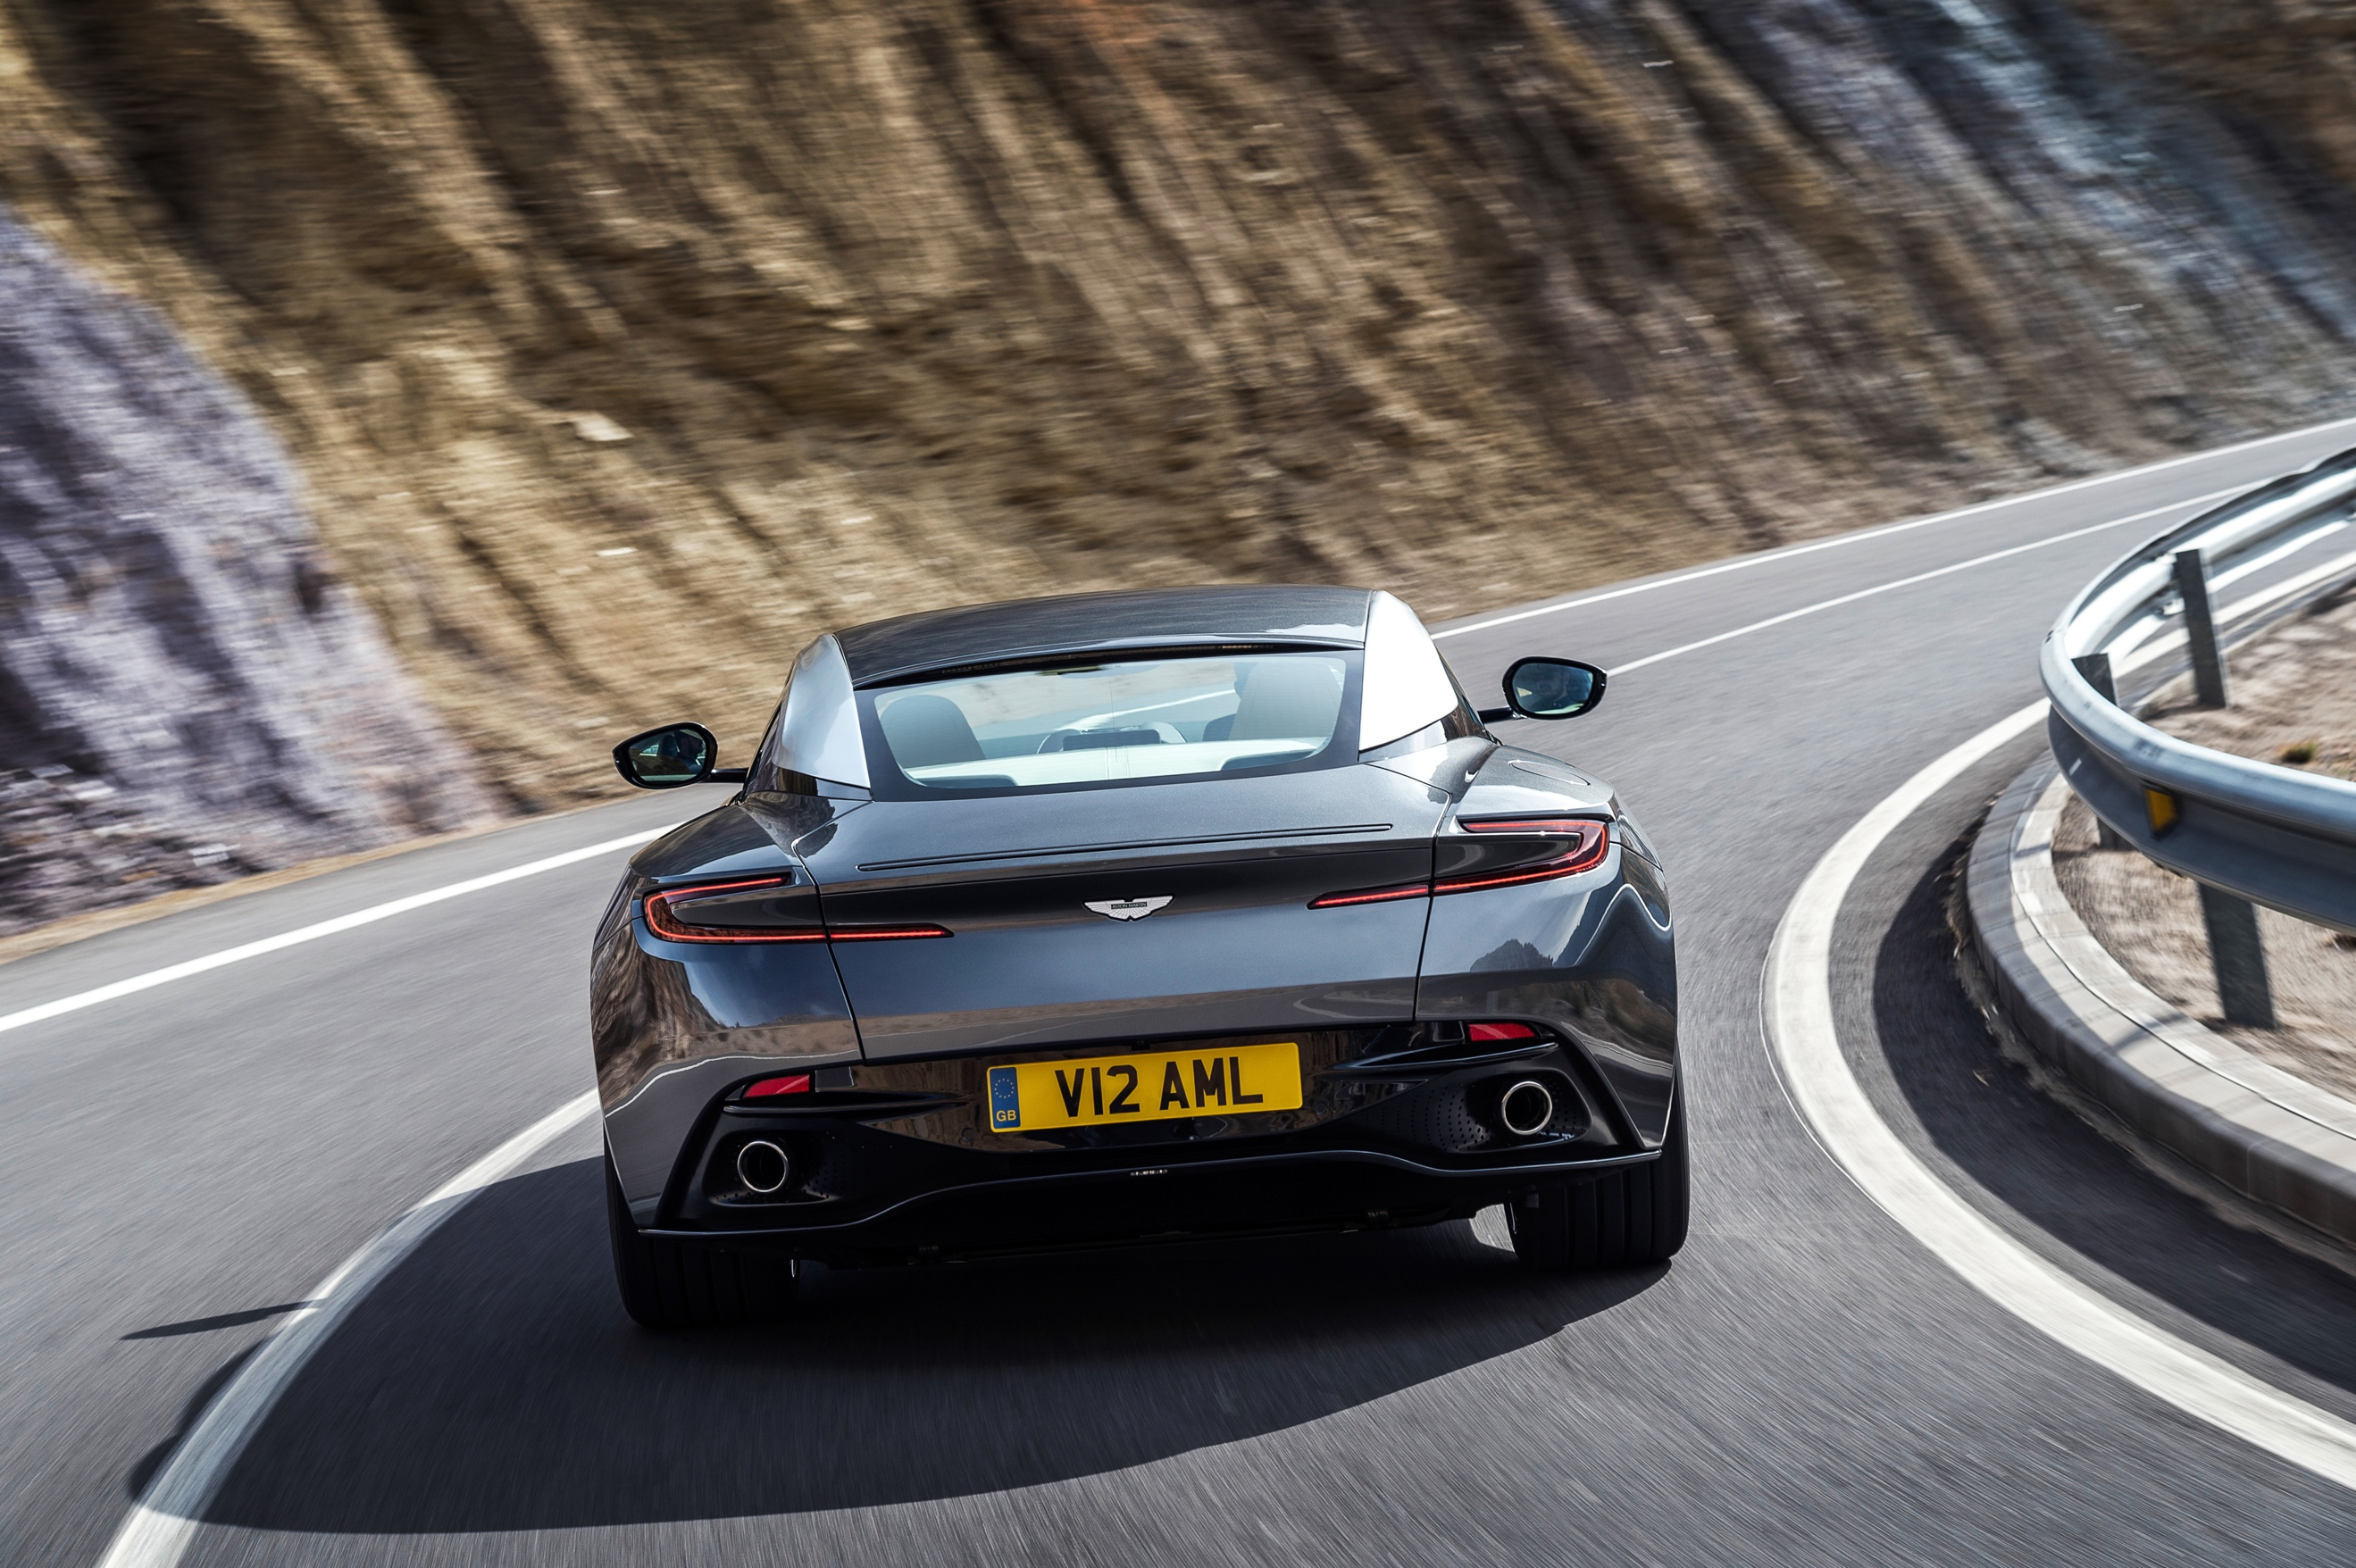 ../Press%20Kits/AstonMartin_DB11%20Press%20Kit%20-%20EMBARGO%2014/DB11%20Launch%20Photography%20(Registration%20Plate)/Aston%20Martin%20DB11_Embargo%20010316%201400CET_17.jpg